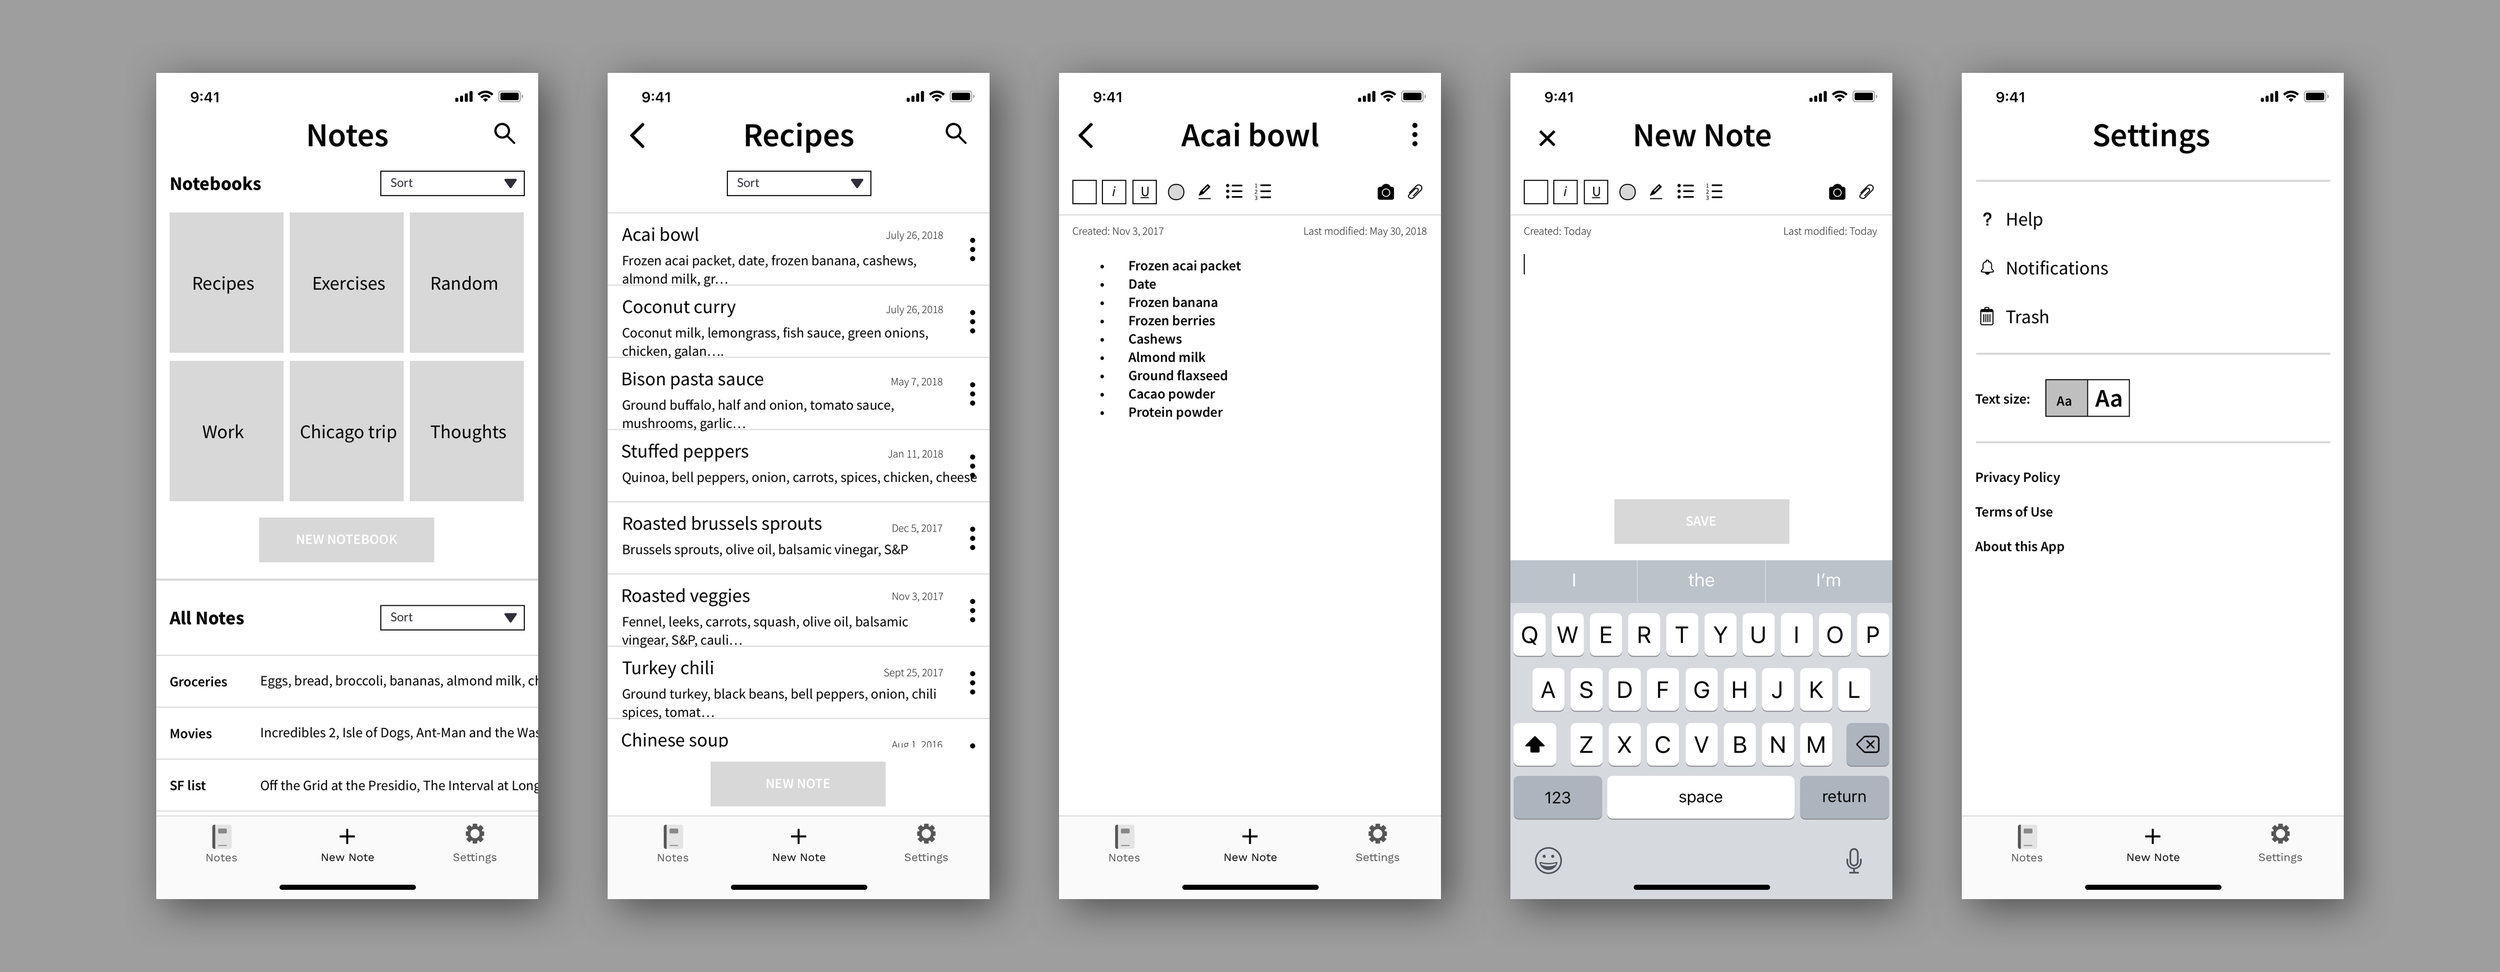 Medium-Fidelity Wireframes@3x.jpg